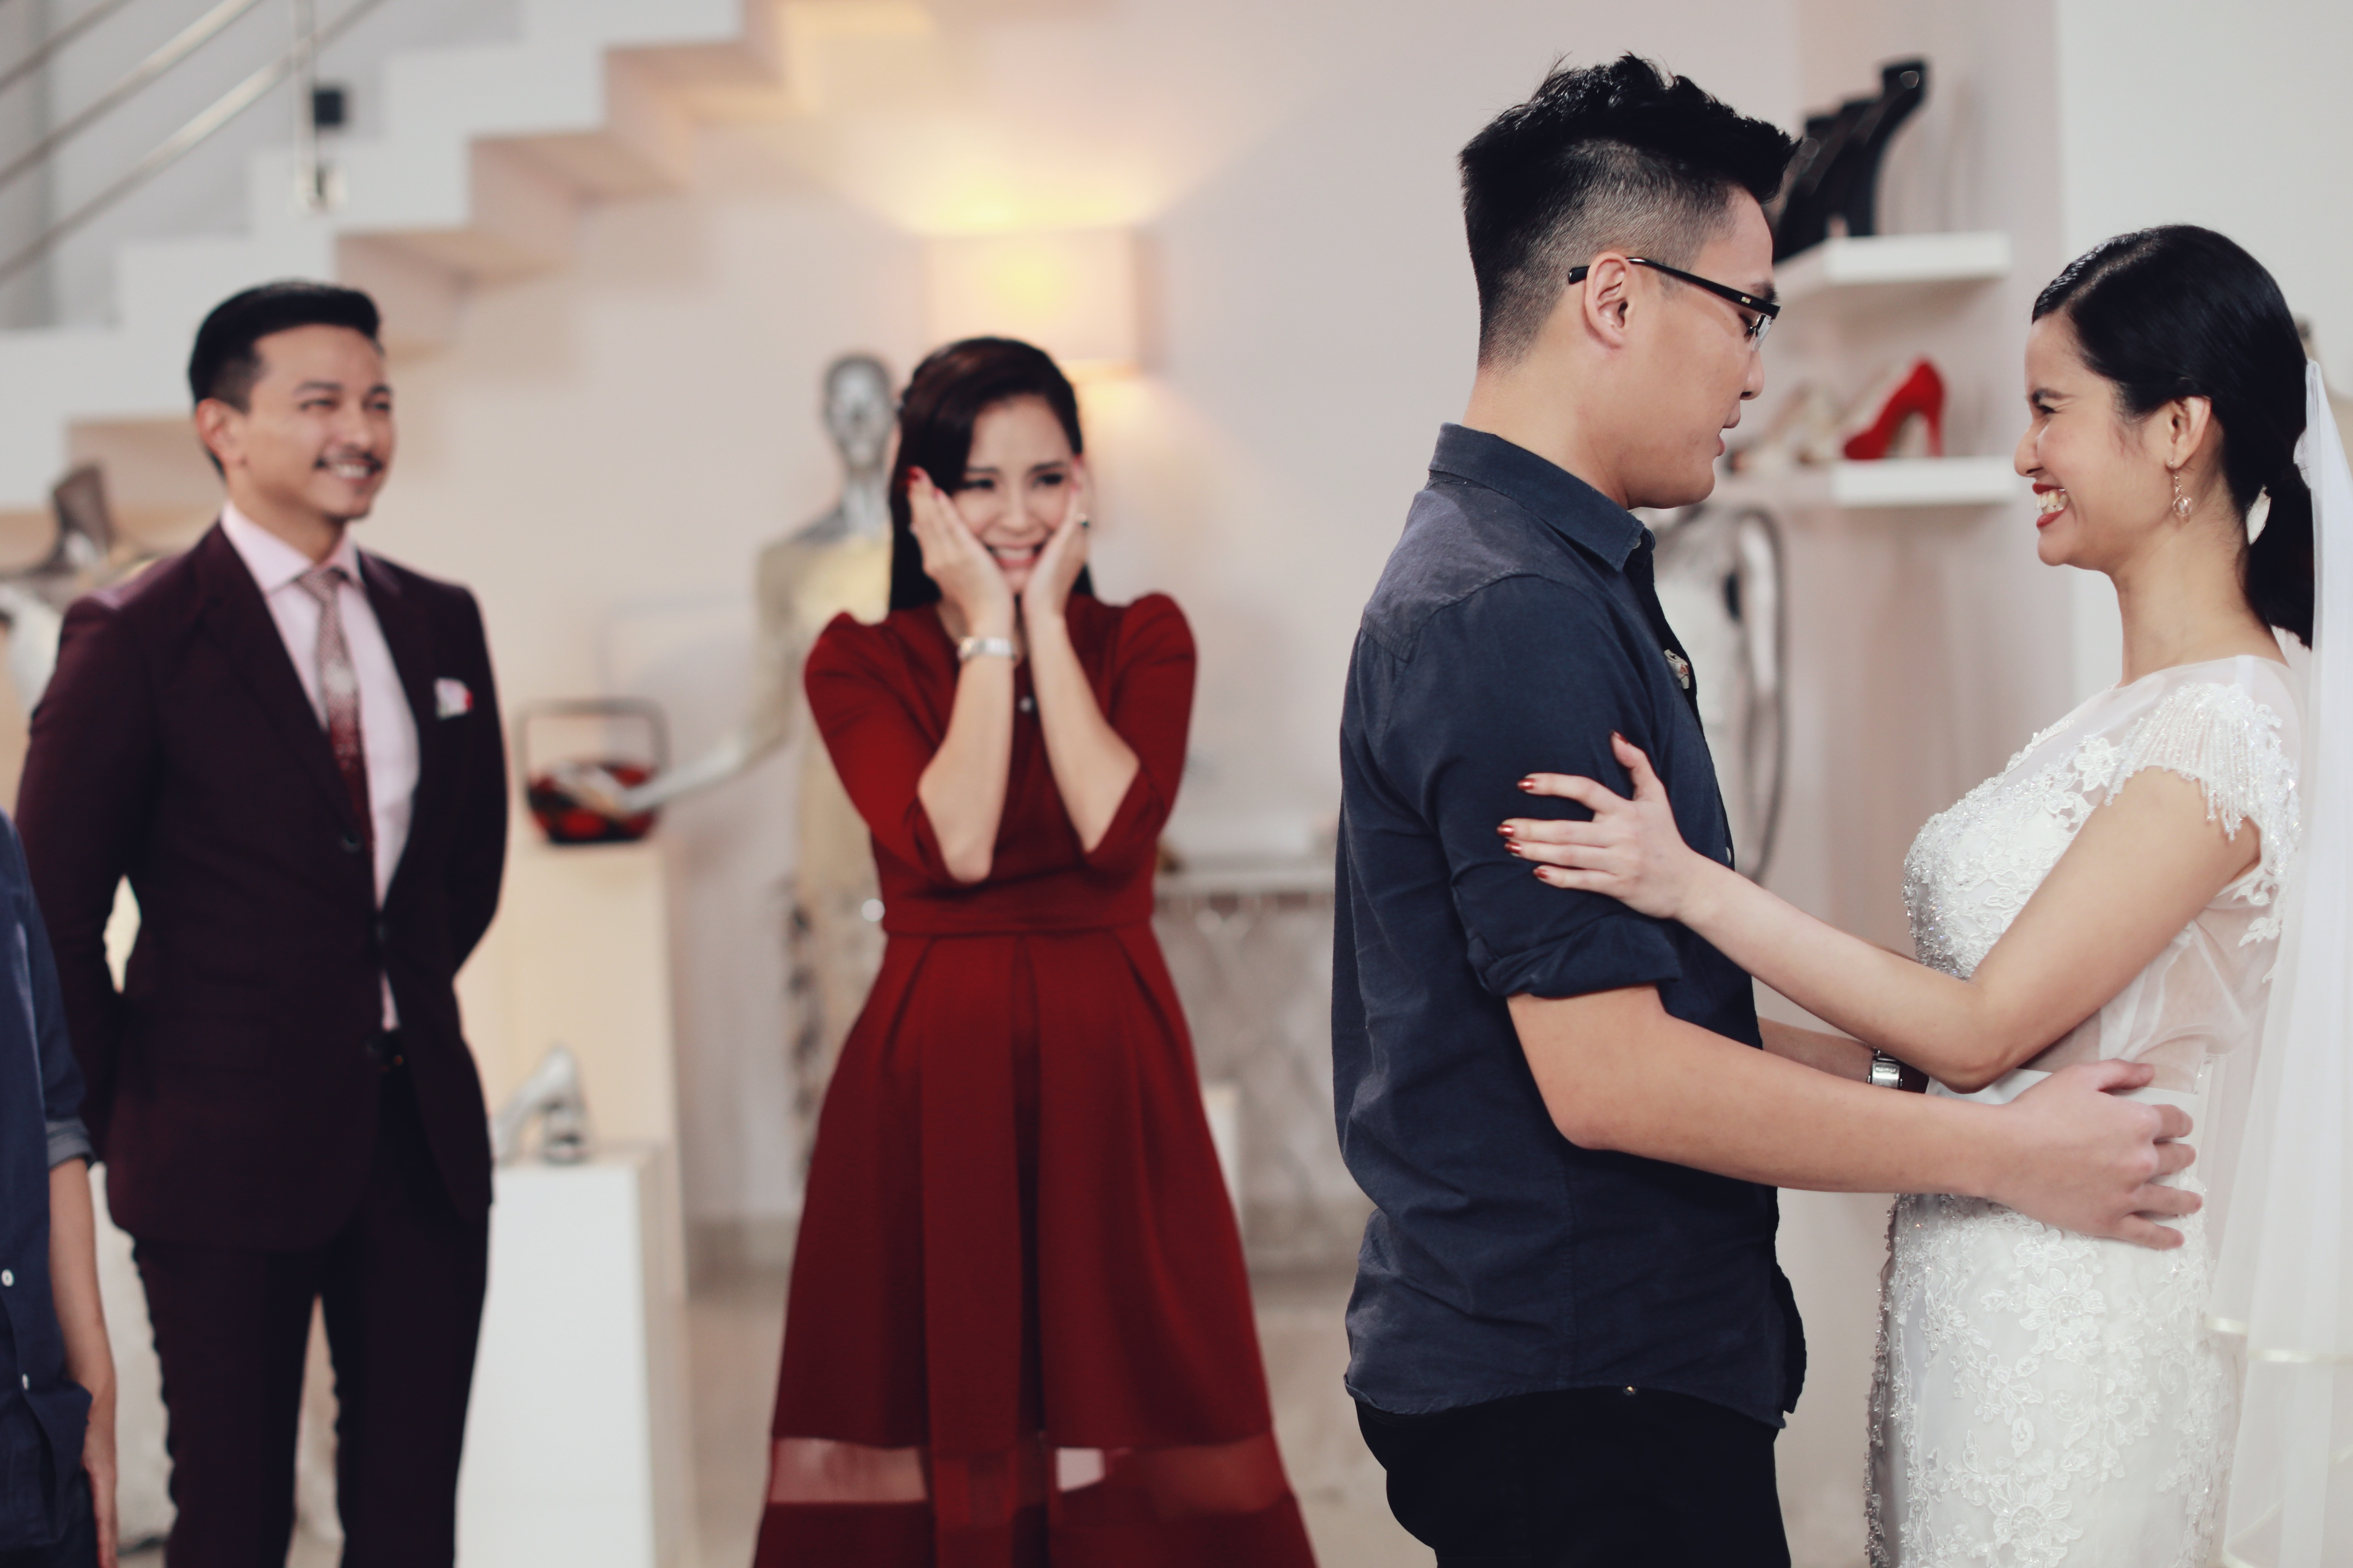 'Say Yes To The Dress Asia' hosts u2013 renowned Malaysian fashion designer Jovian Mandagie and television presenter/actress Daphne Iking u2013u00a0give Asian brides memorable moments as they find the perfect dress